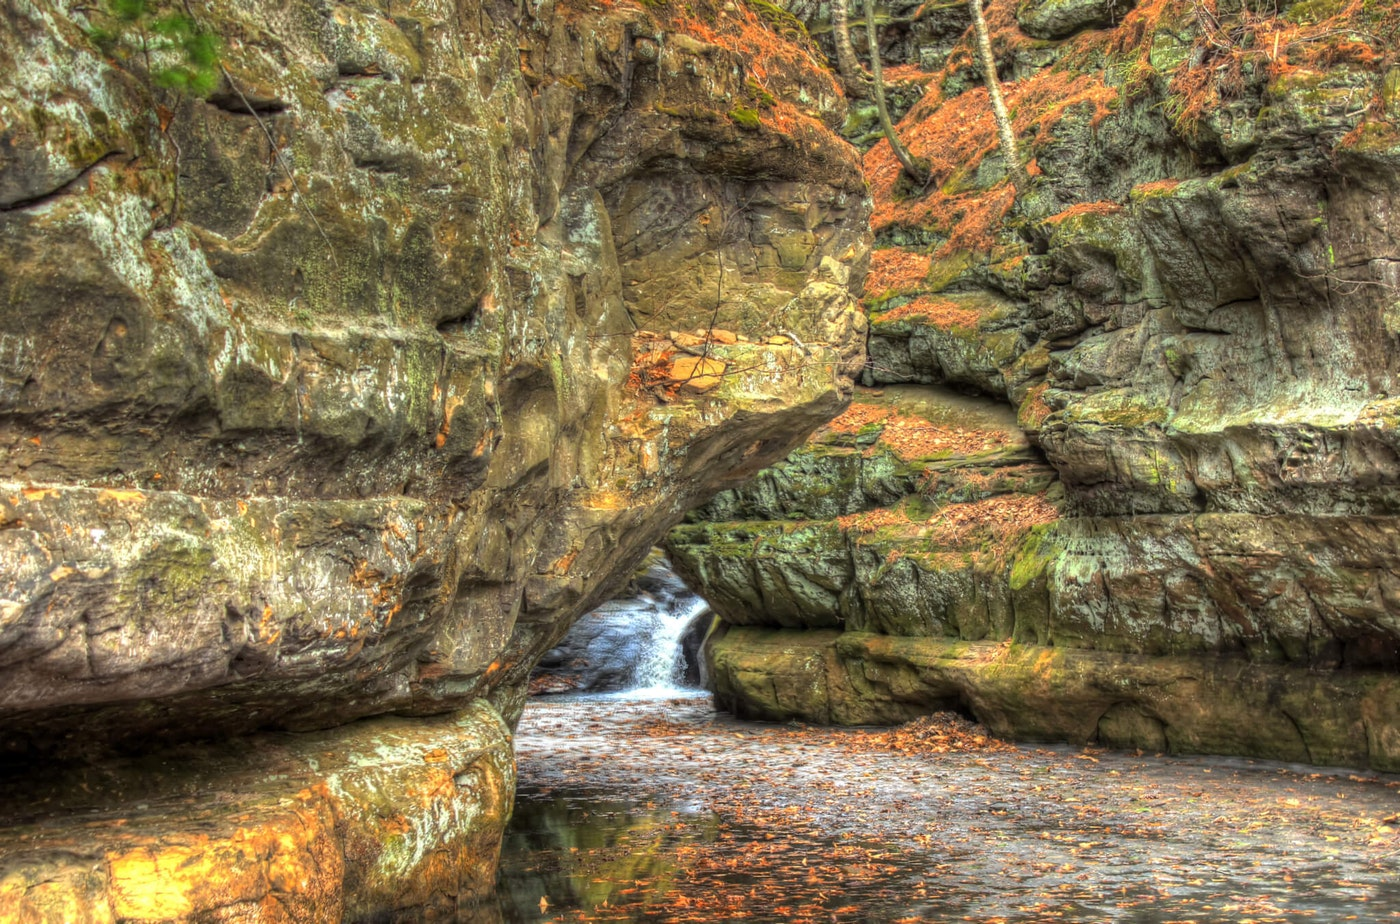 The scenic gorge at Pewit's Nest in Baraboo. (Photo Courtesy of Wikimedia Commons)